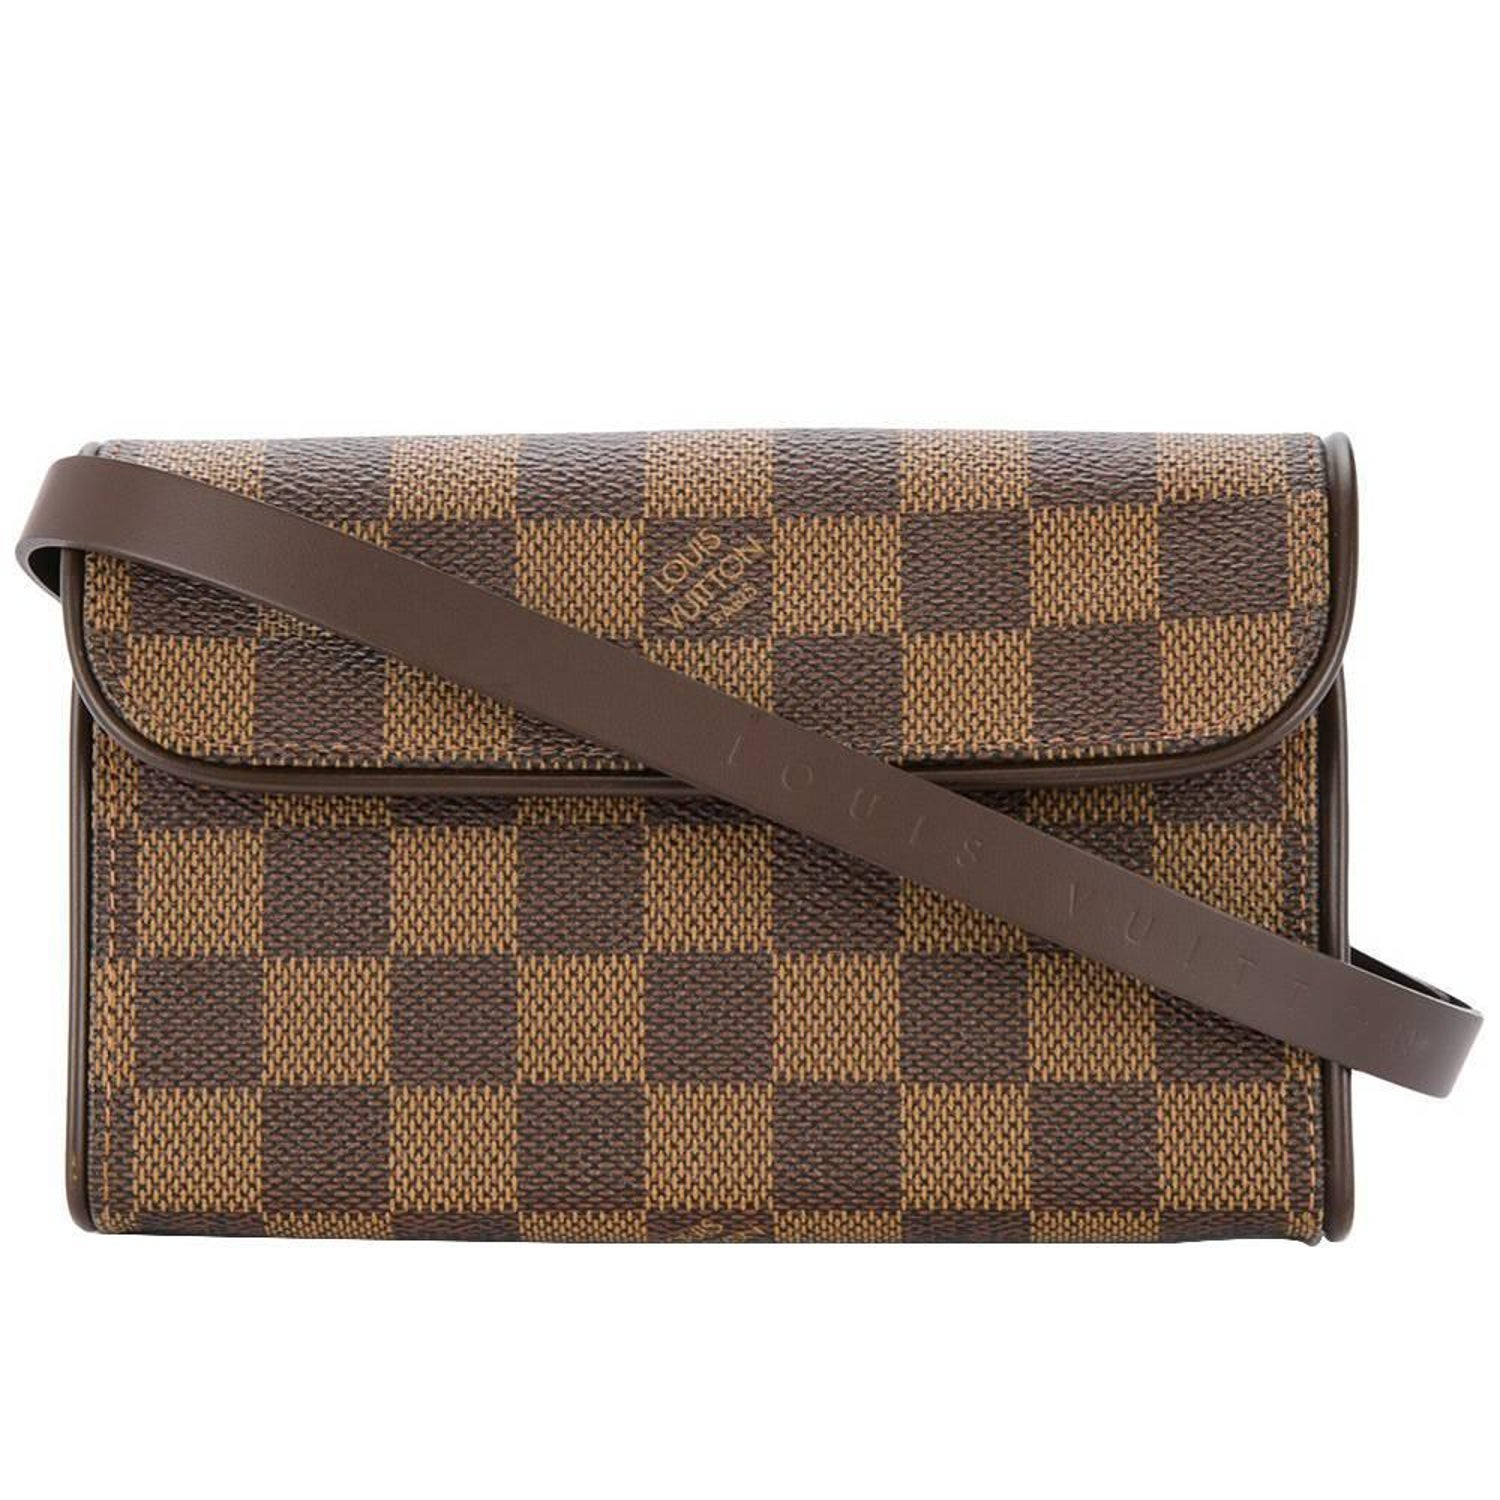 a8831ae271aae Louis Vuitton Brown Damier Men s Women s Fanny Pack Waist Bag For Sale at  1stdibs